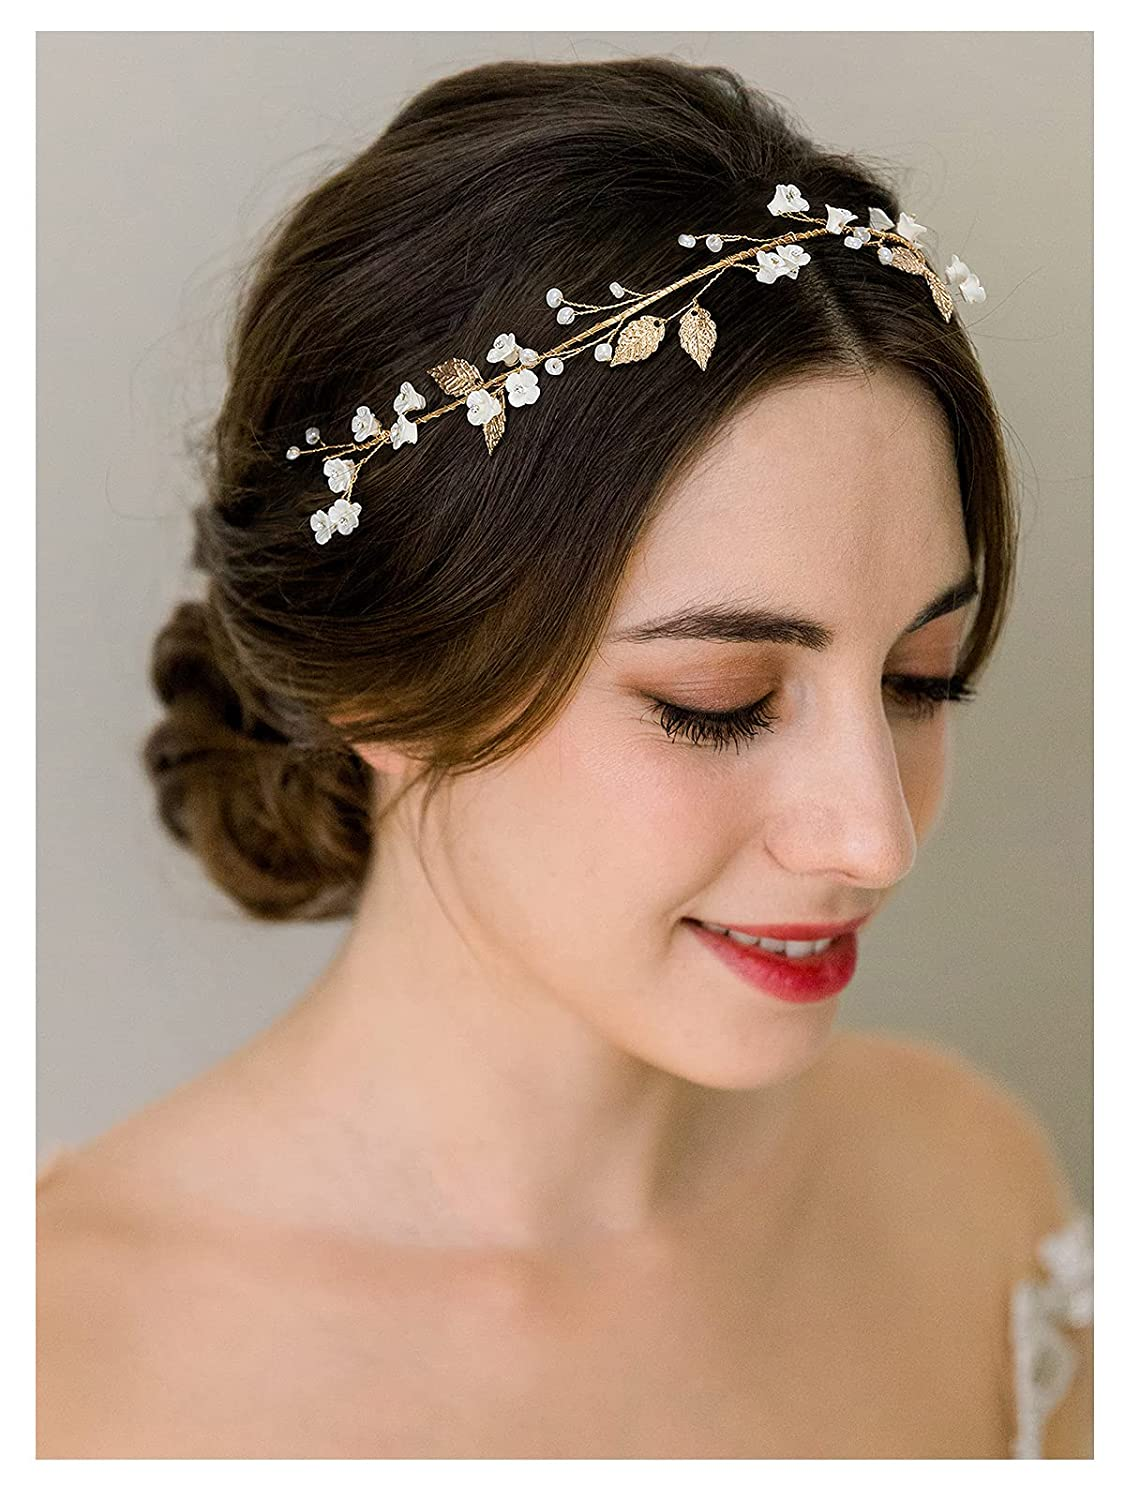 SWEETV Flower-Leaf Bridal Headpieces for Wedding Hair Band for Brides Gold Wedding Headband for Women Prom Party